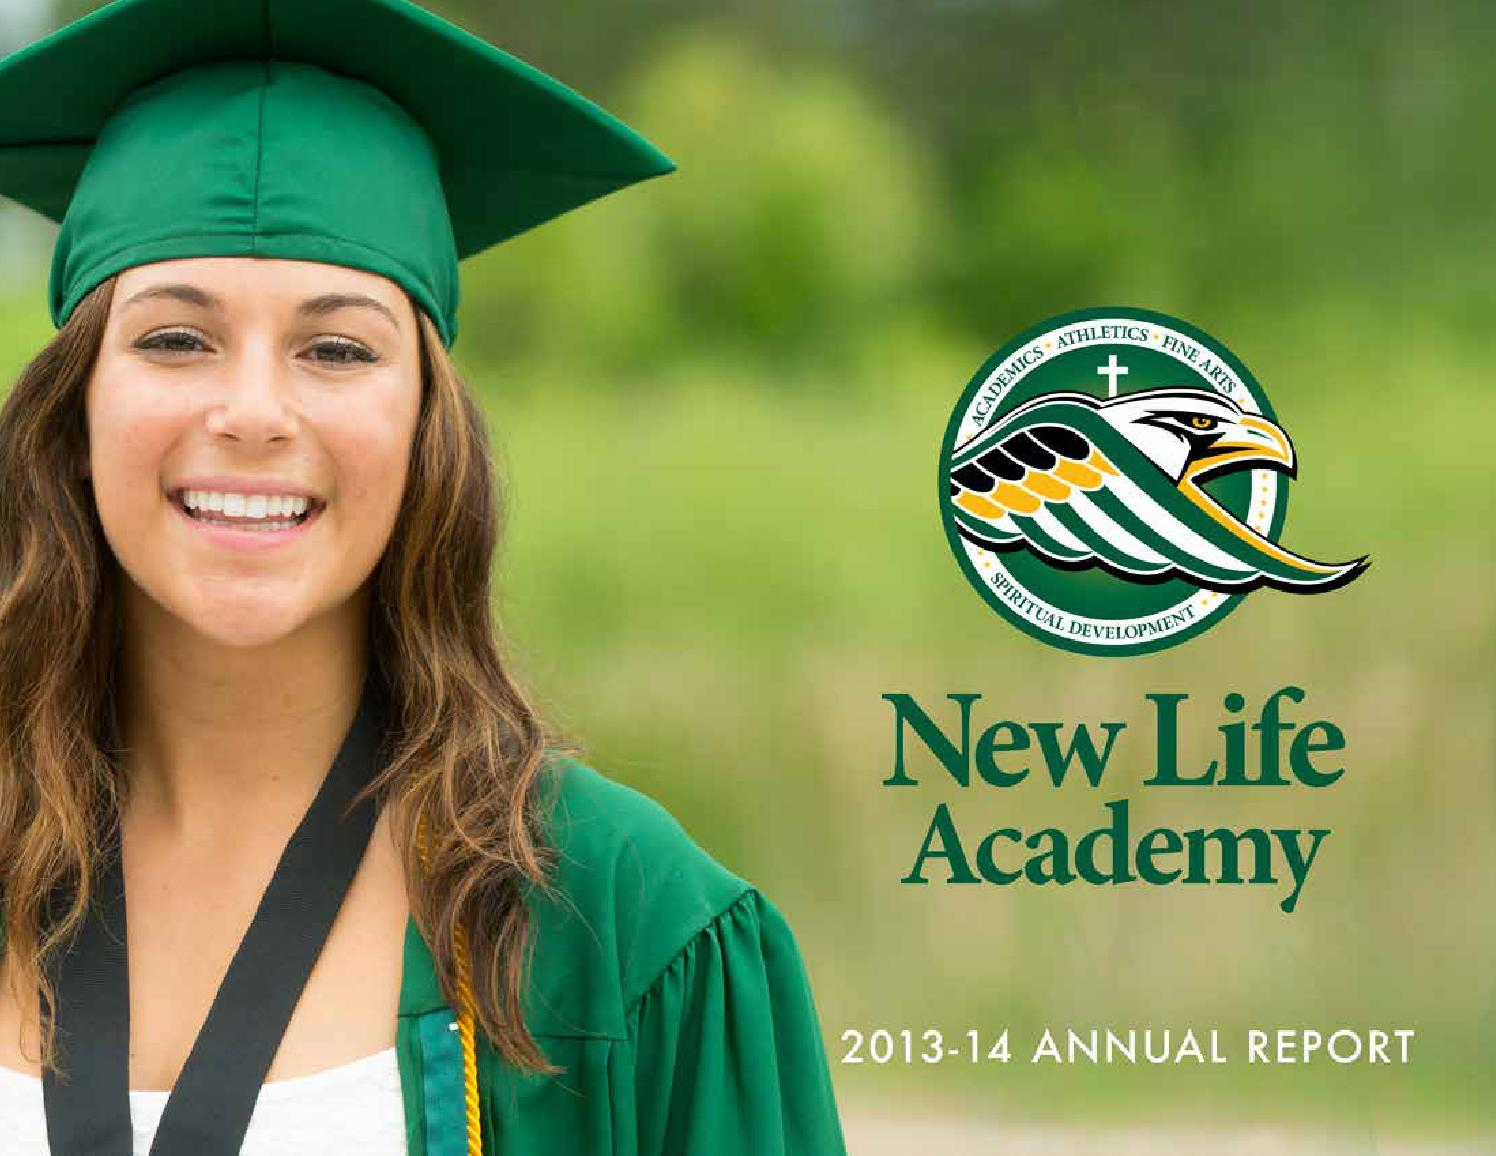 New Life Academy\'s 2013-14 Annual Report by New Life Academy - issuu